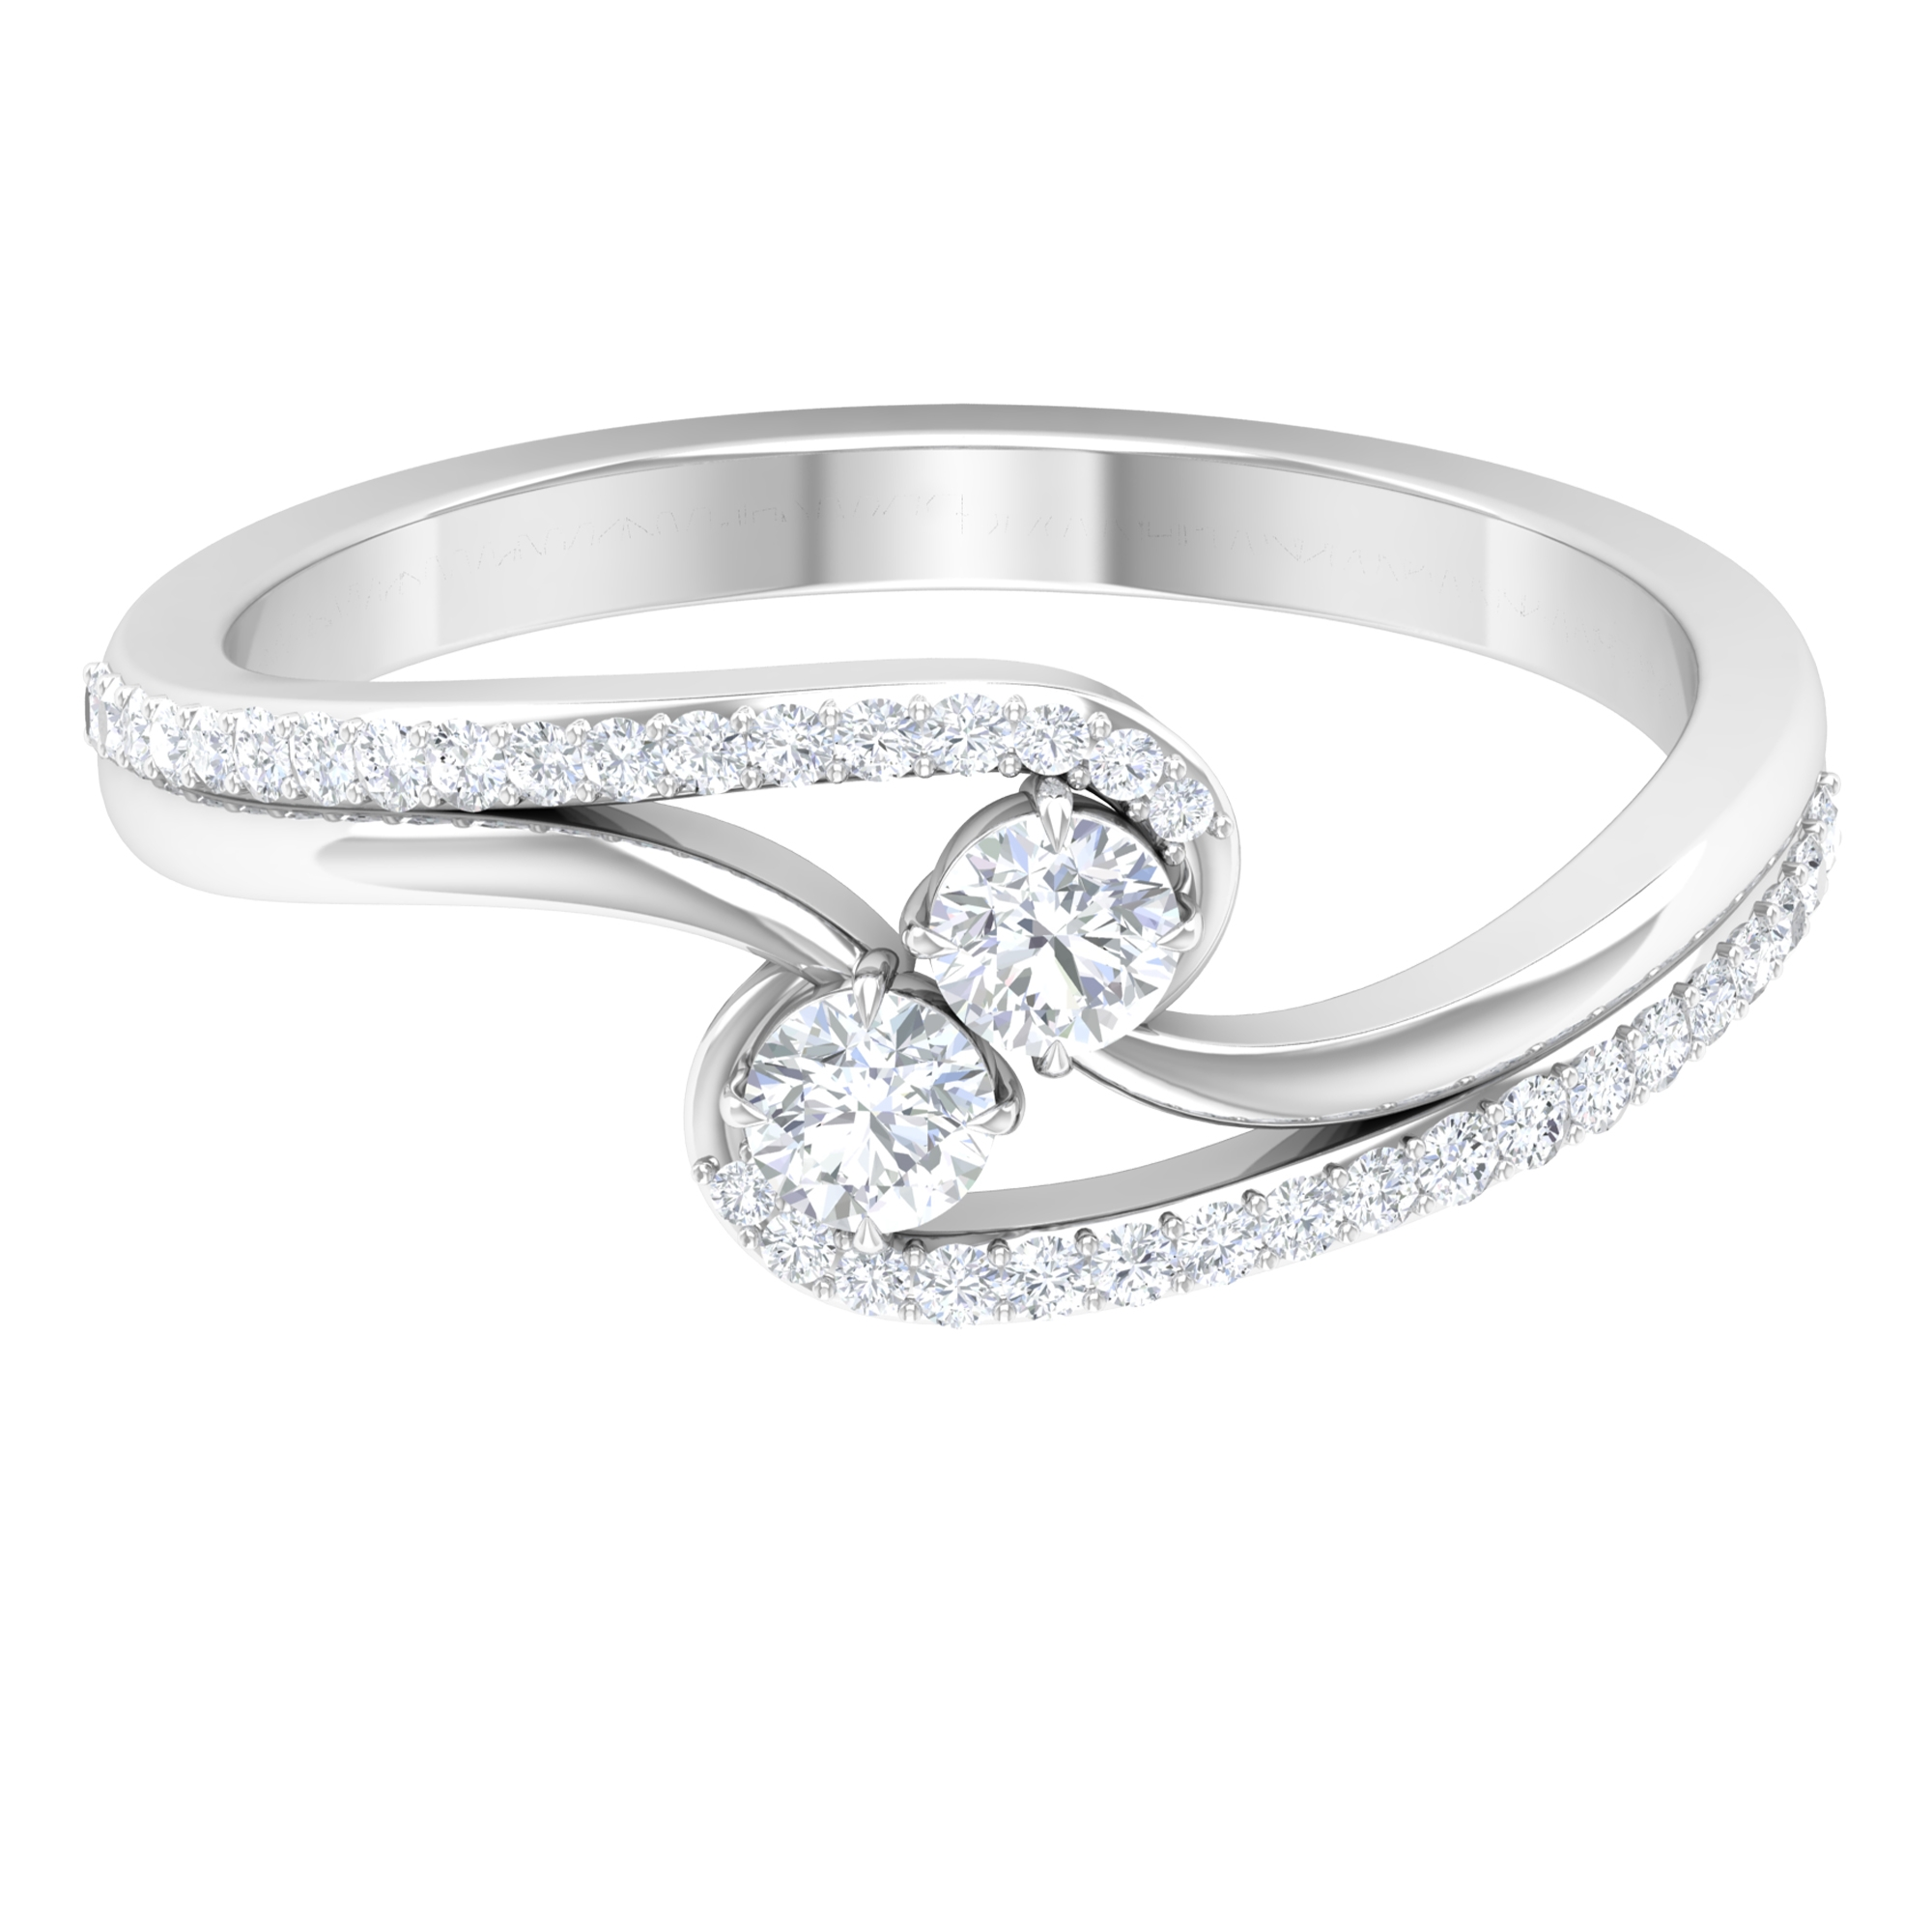 1/2 CT Classic Diamond Accent Ring with Bypass Shank